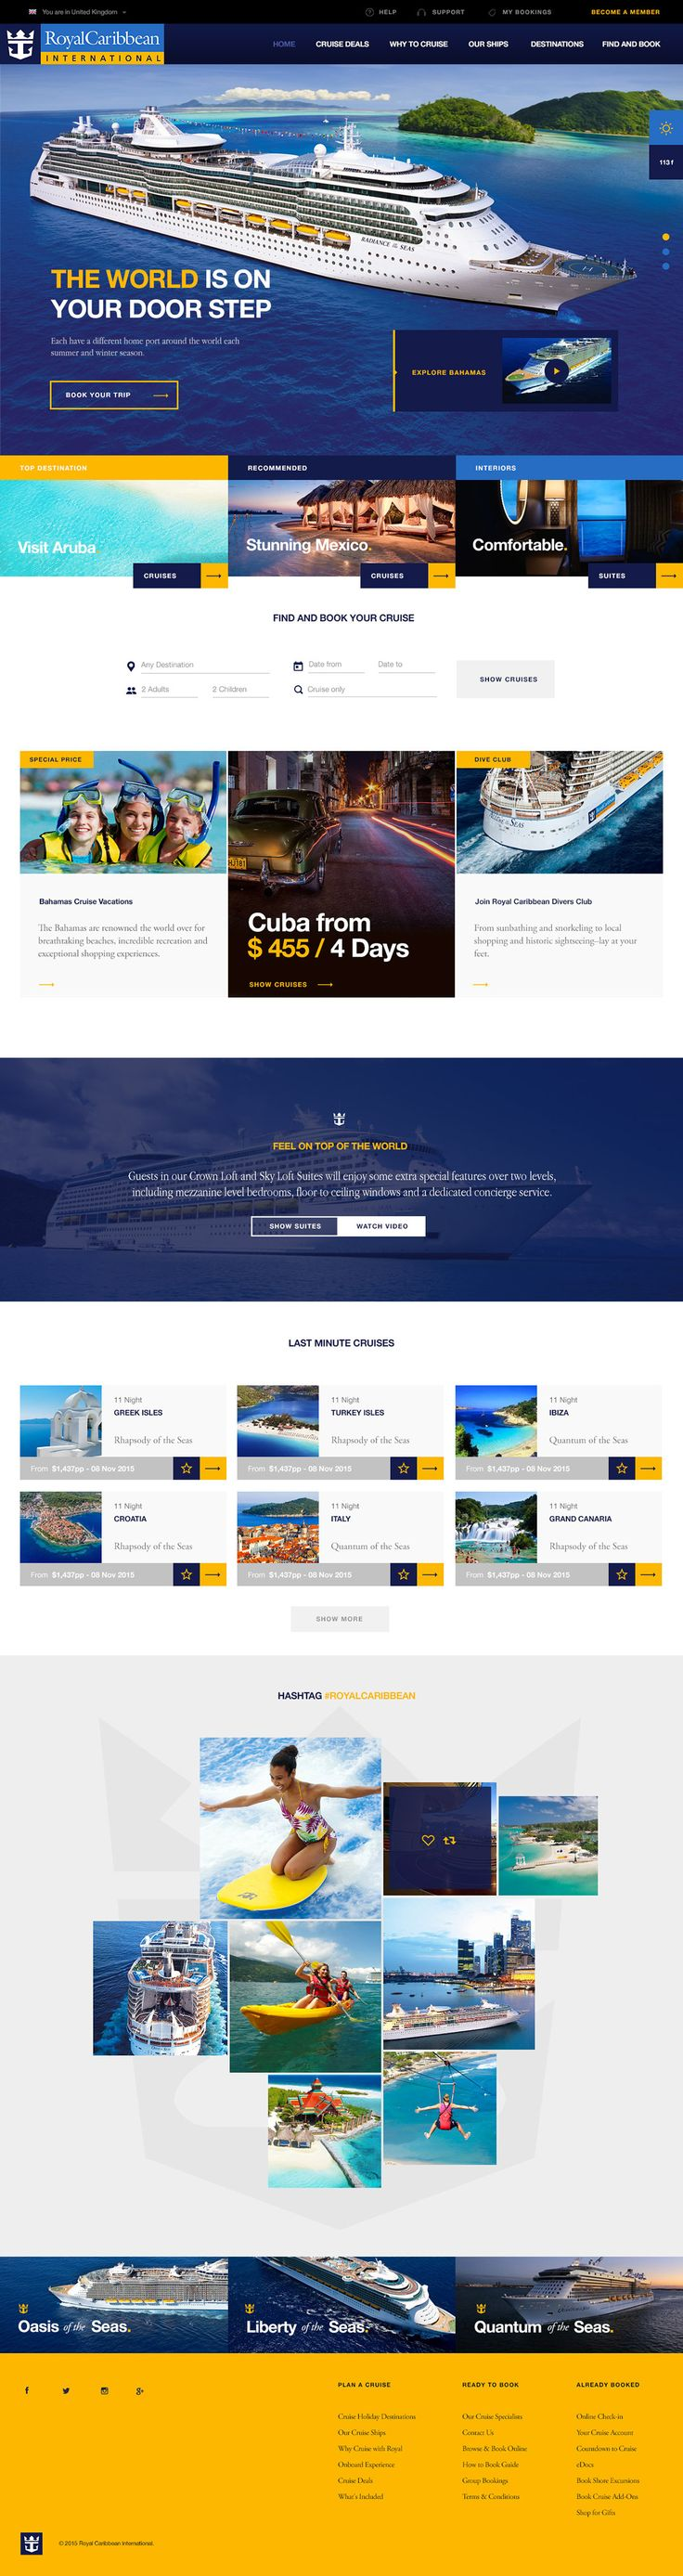 Royal Caribbean International web design 2015. Astounding design. Great colors and layout. So simple yet so appealing.